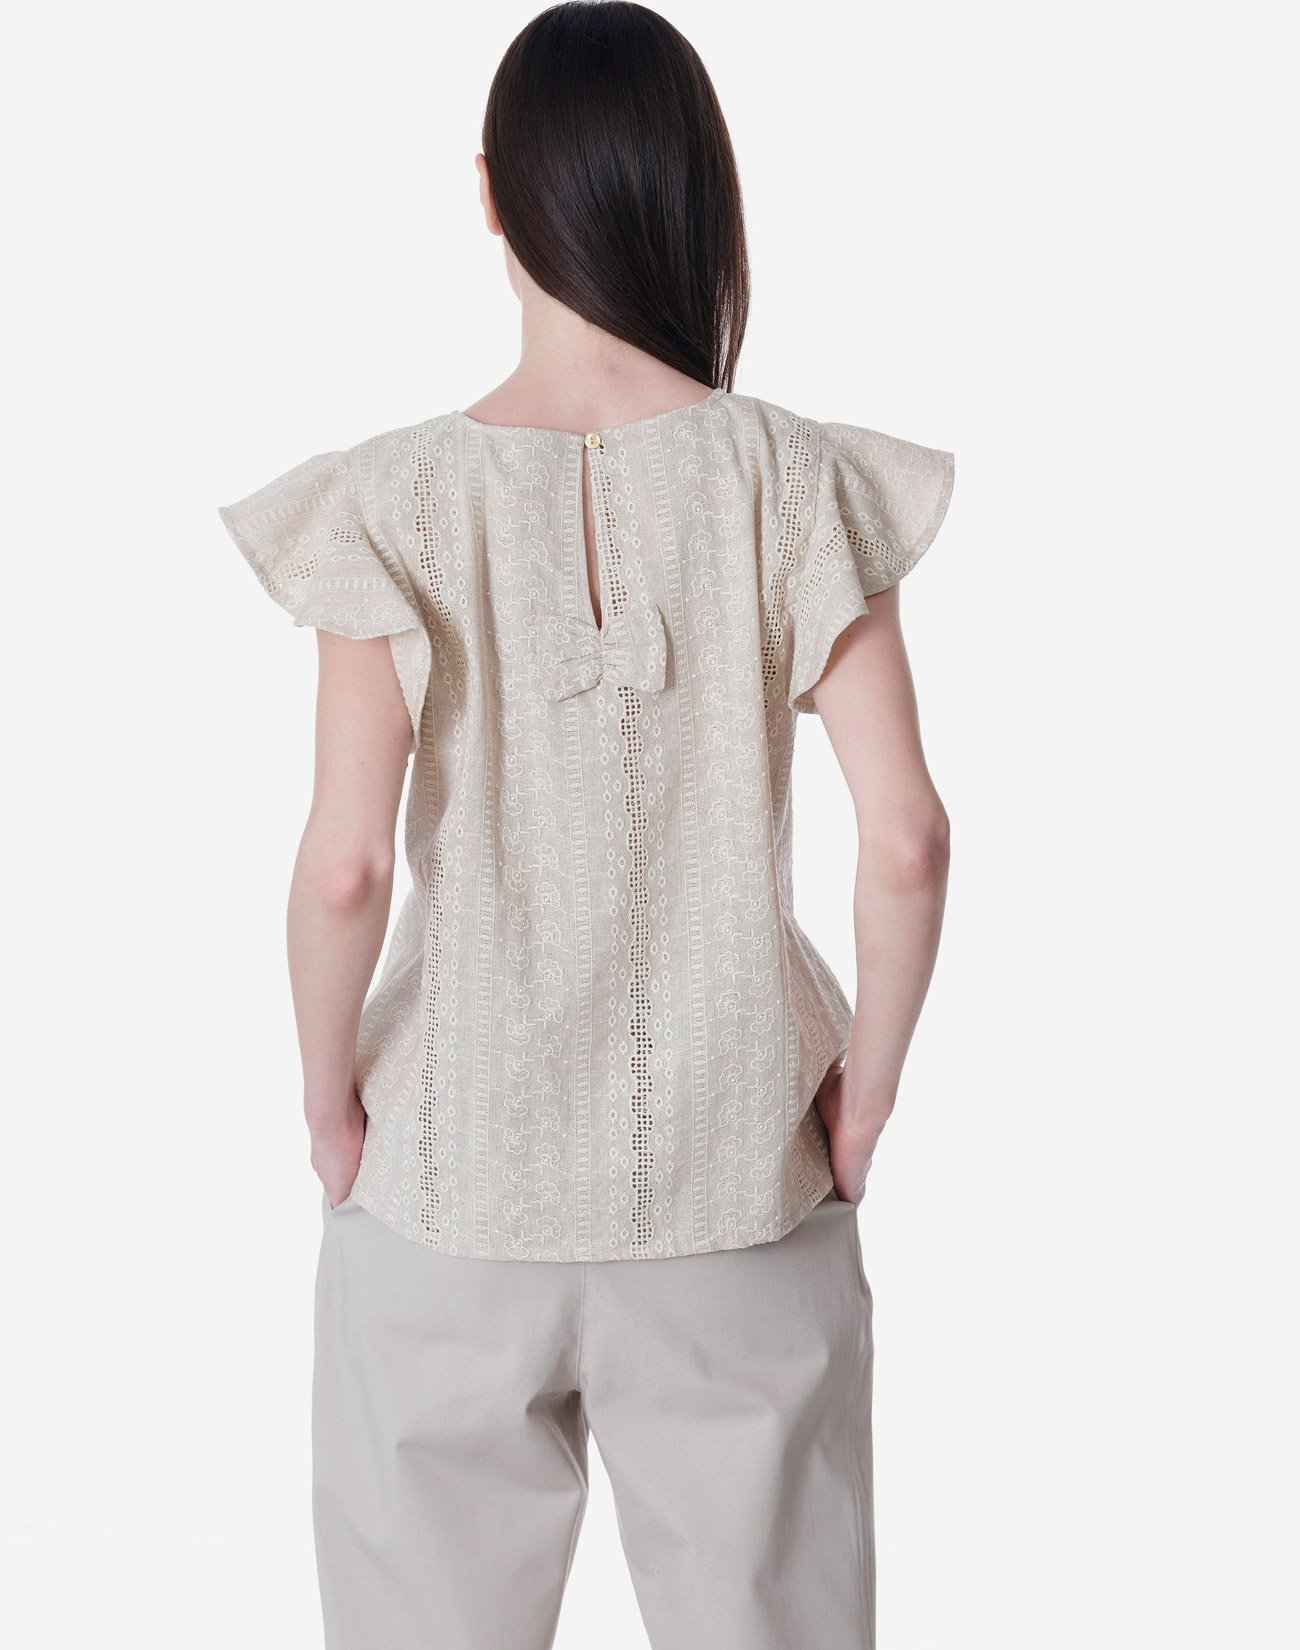 Broderie top with bow